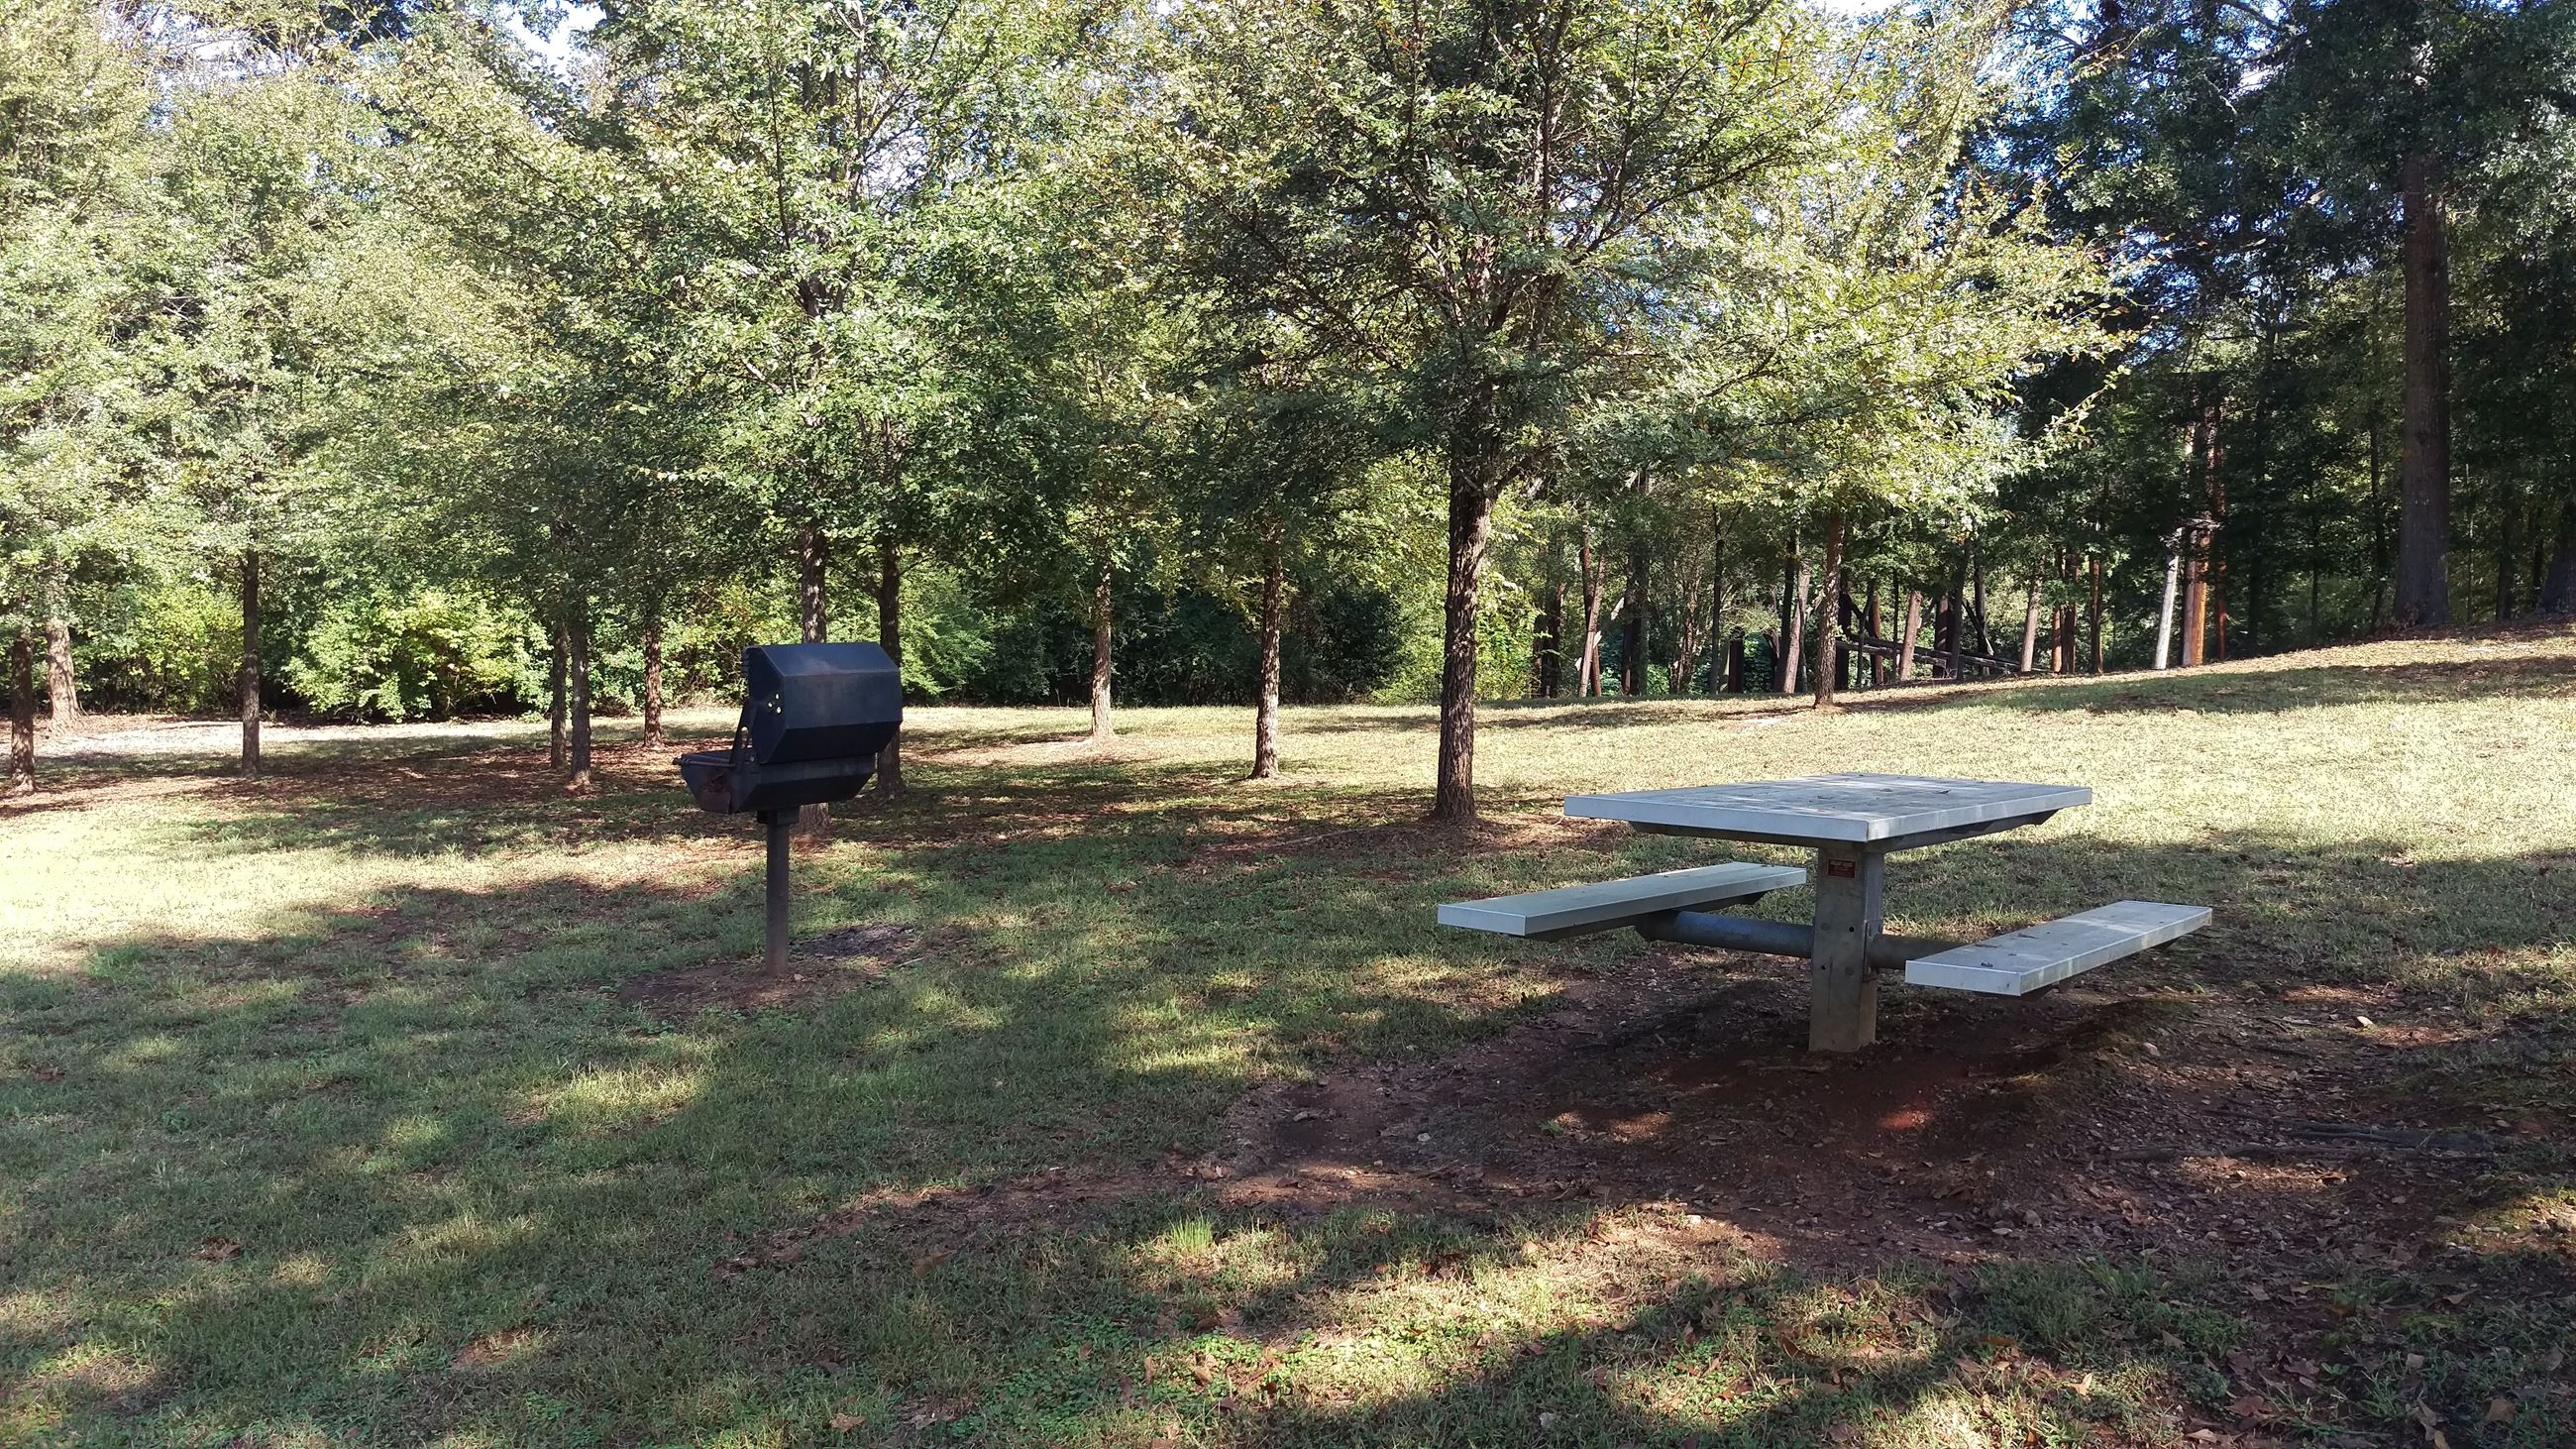 Photo of the Picnic Area adjacent to the Poplar Street Parking at Dudley Park.